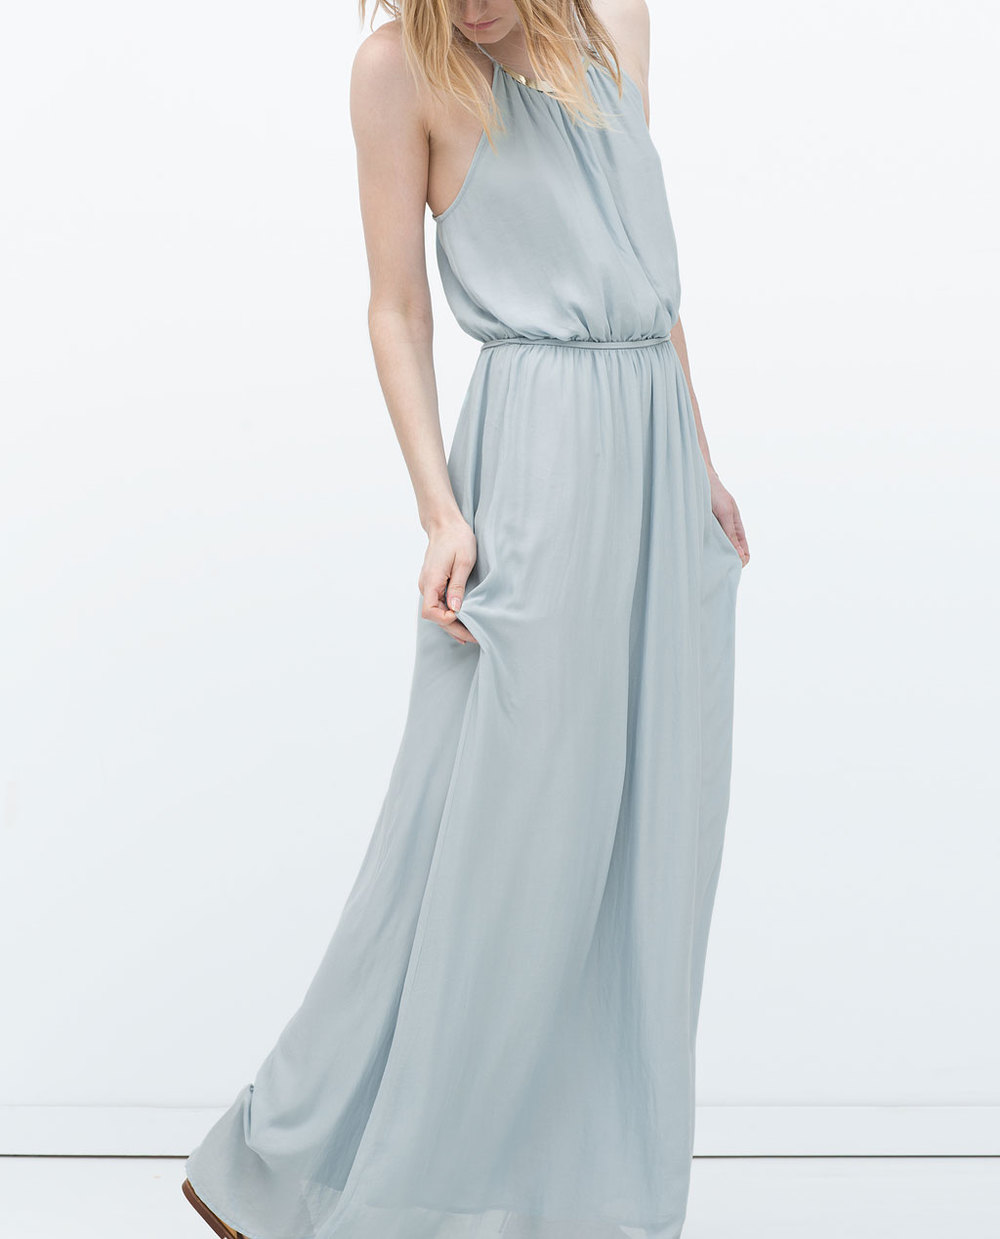 LONG APPLIQUE NECKLINE MAXI 49.99 USD